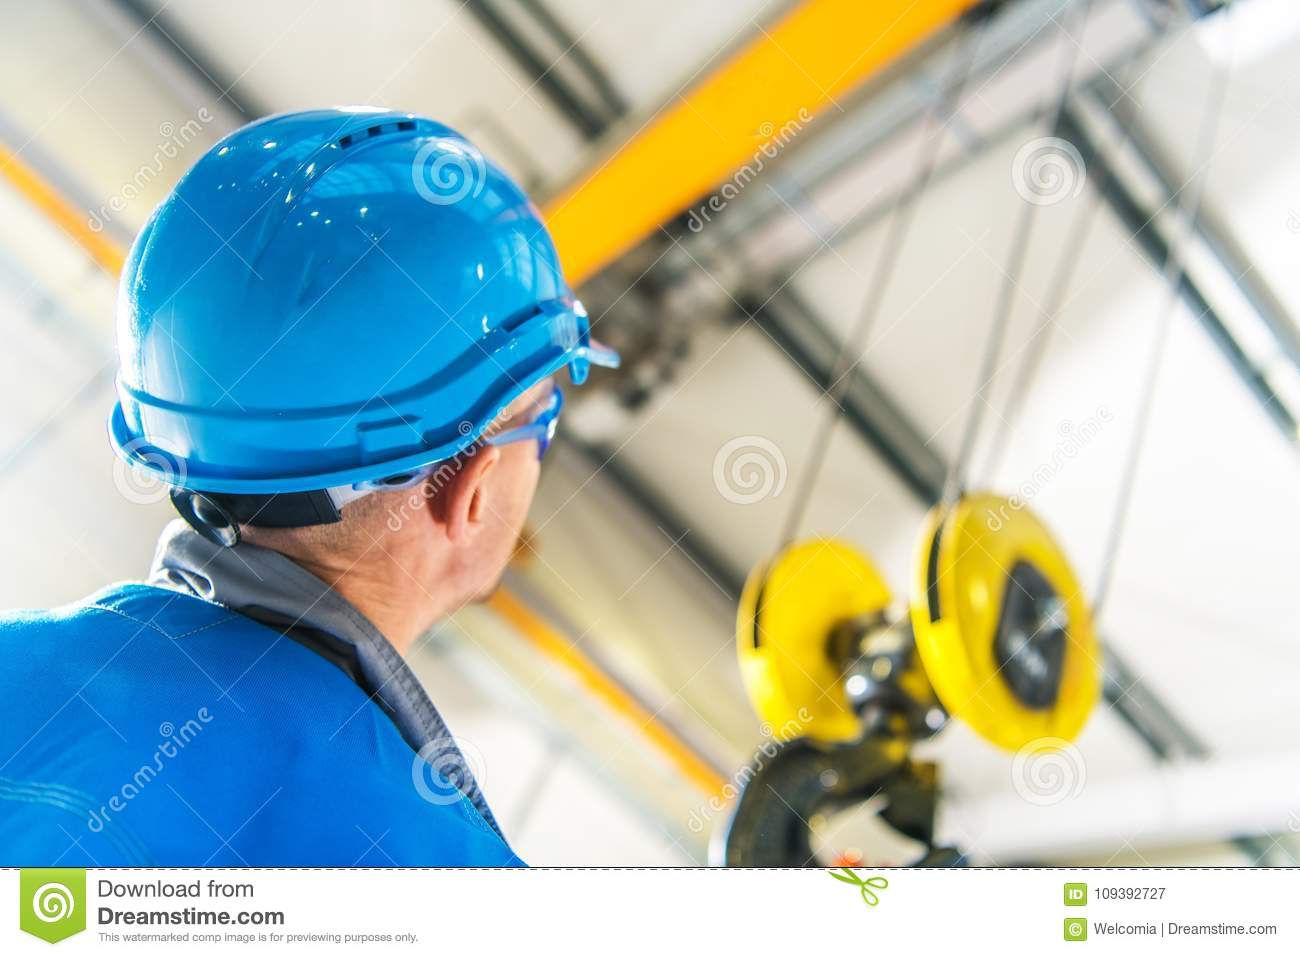 Lift Crane And Head Protection Stock Image - Image of work